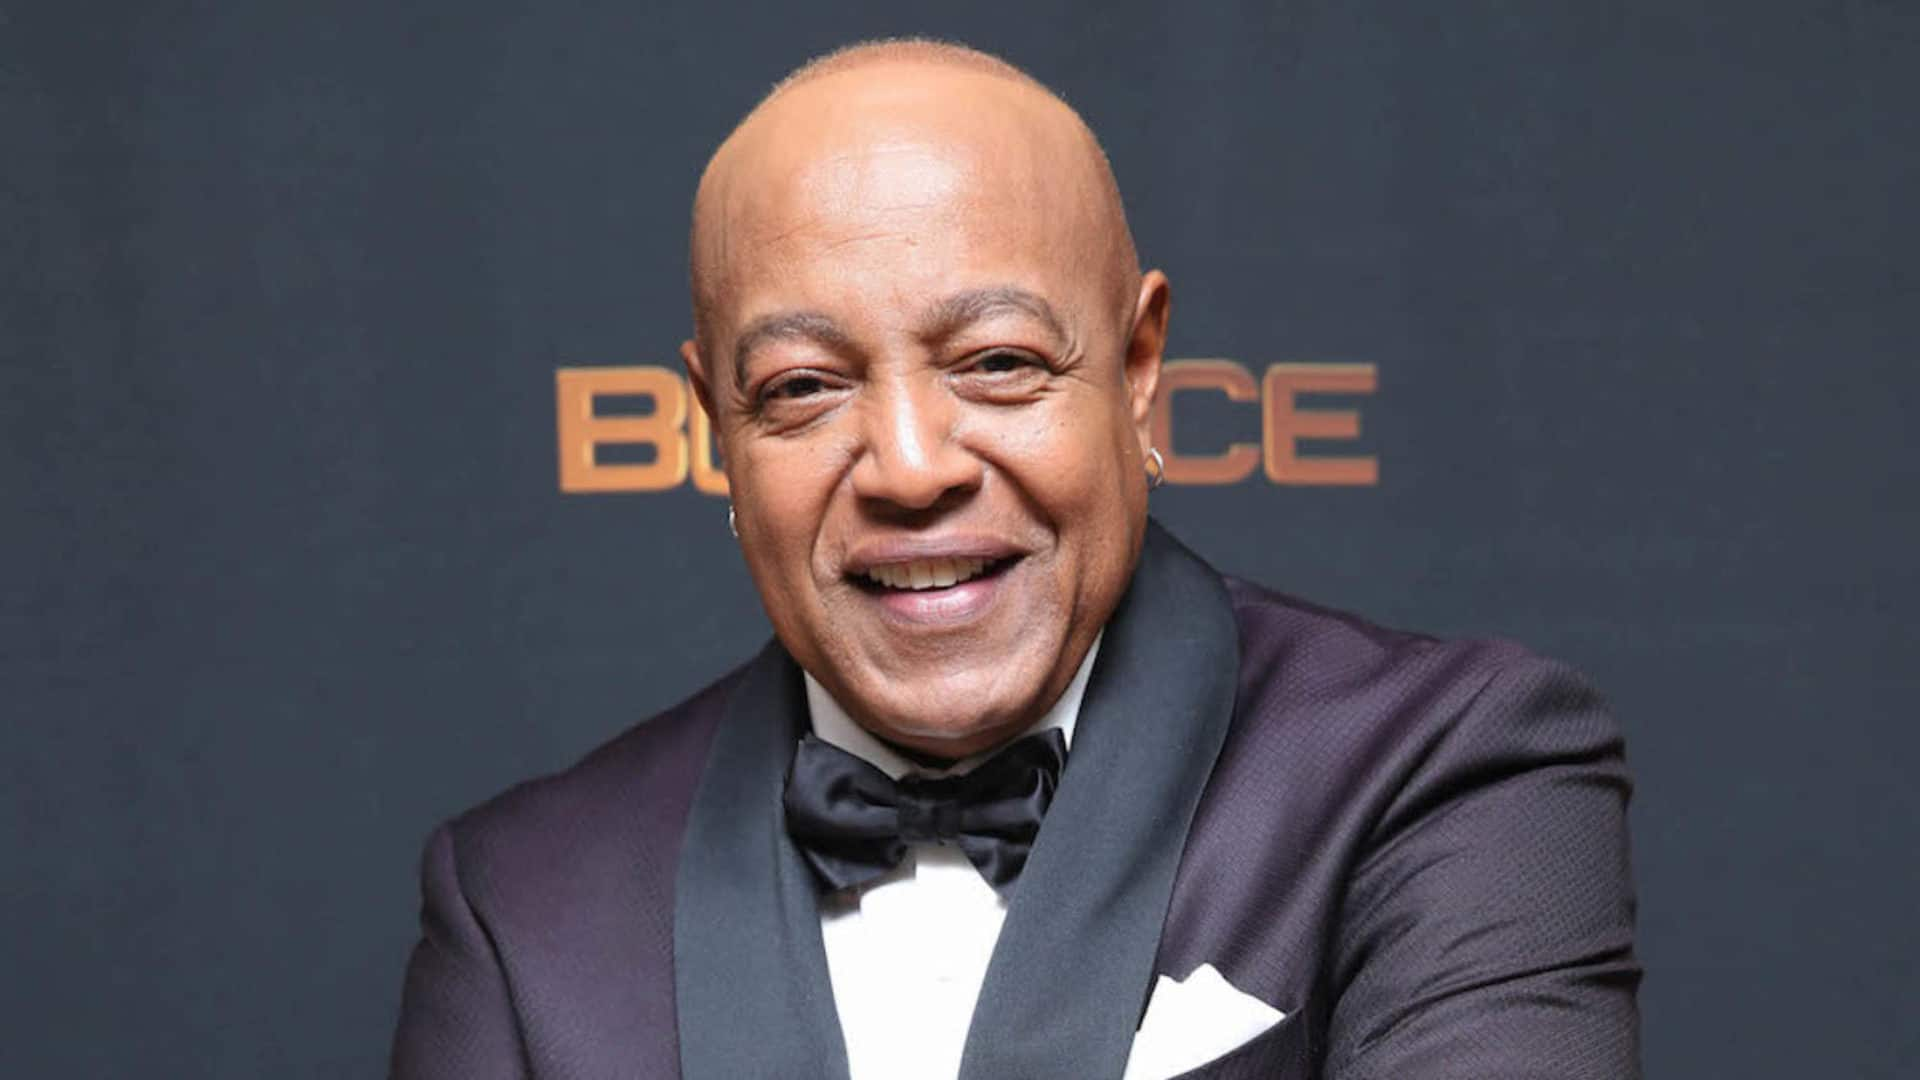 Peabo Bryson Meets First Responders Who Saved His Life After Suffering Heart Attack